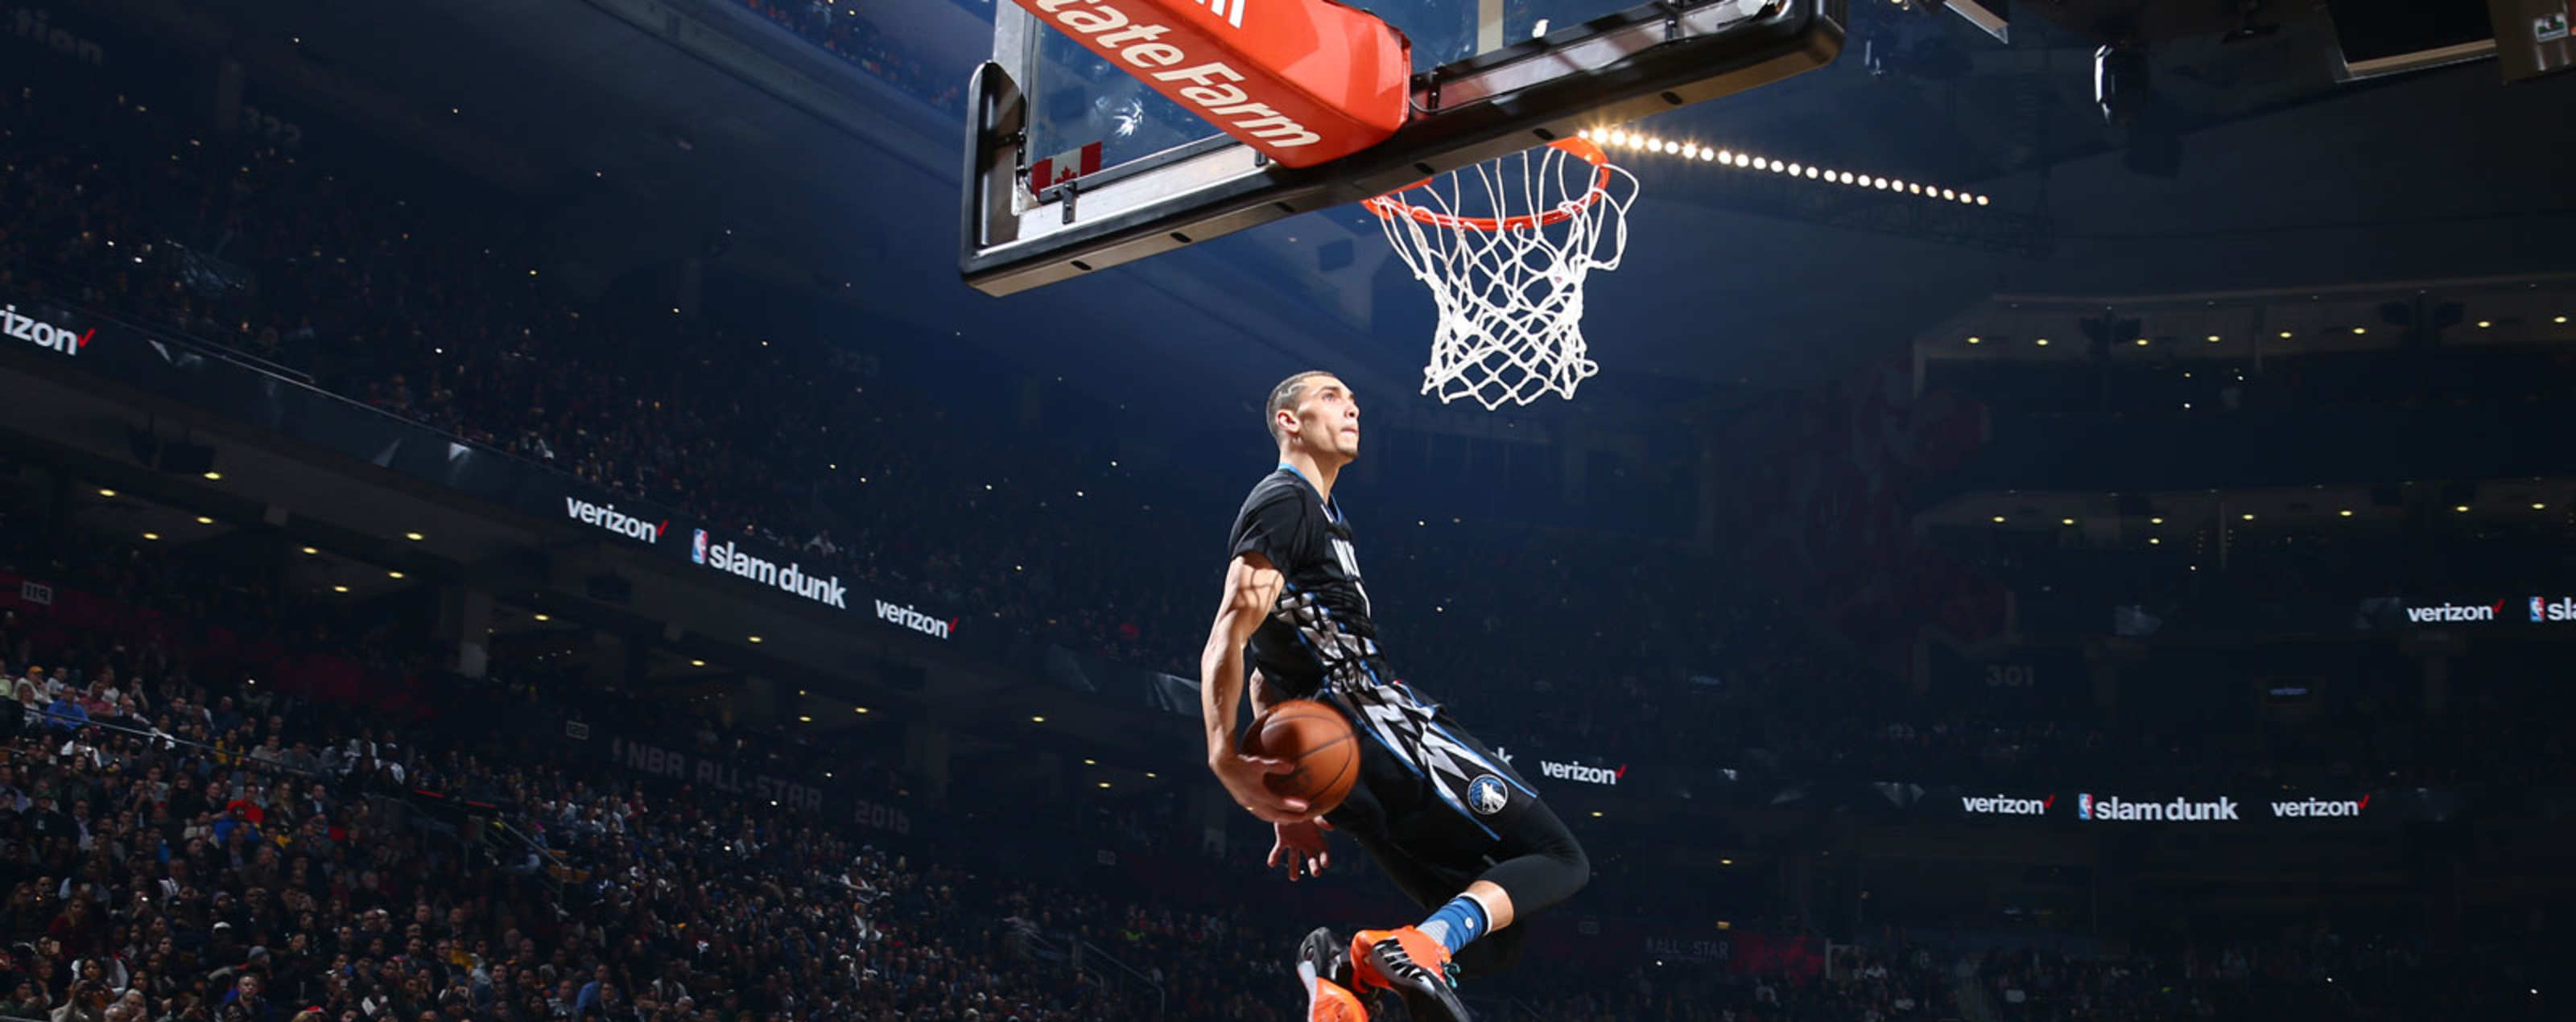 Zach LaVine  8 of the Minnesota Timberwolves dunks the ball during the  Verizon Slam Dunk 0d844f8387